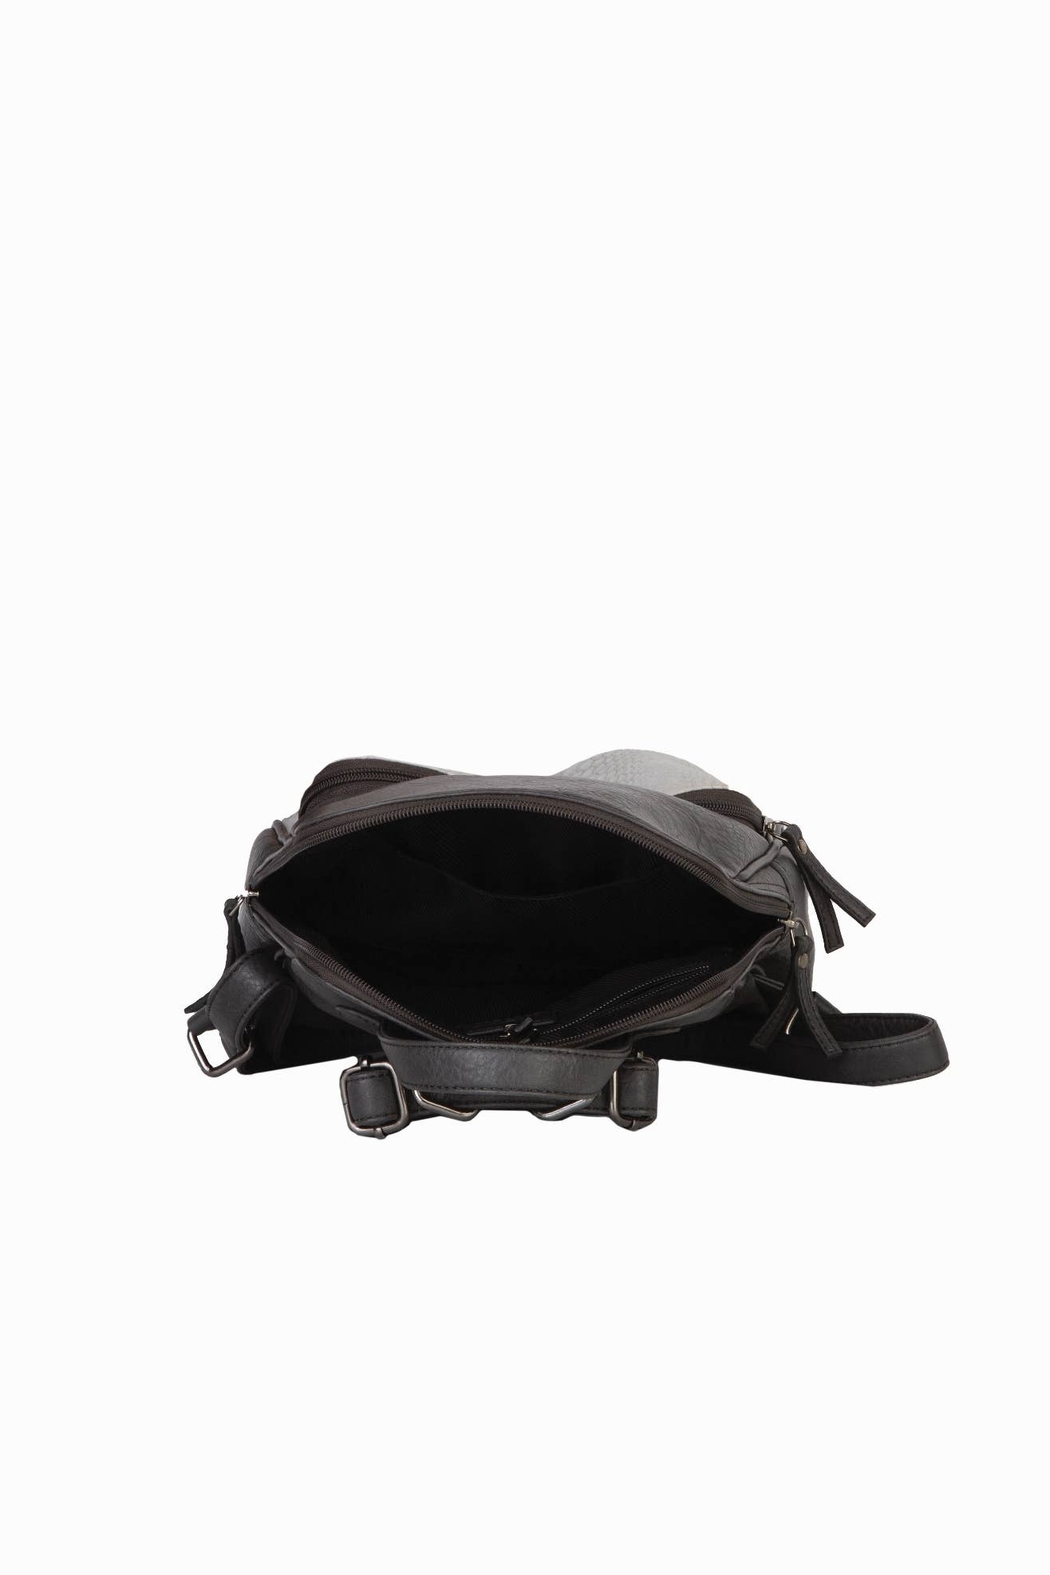 Mona B Vale Vegan Leather Convertible Backpack - Back Cropped Image